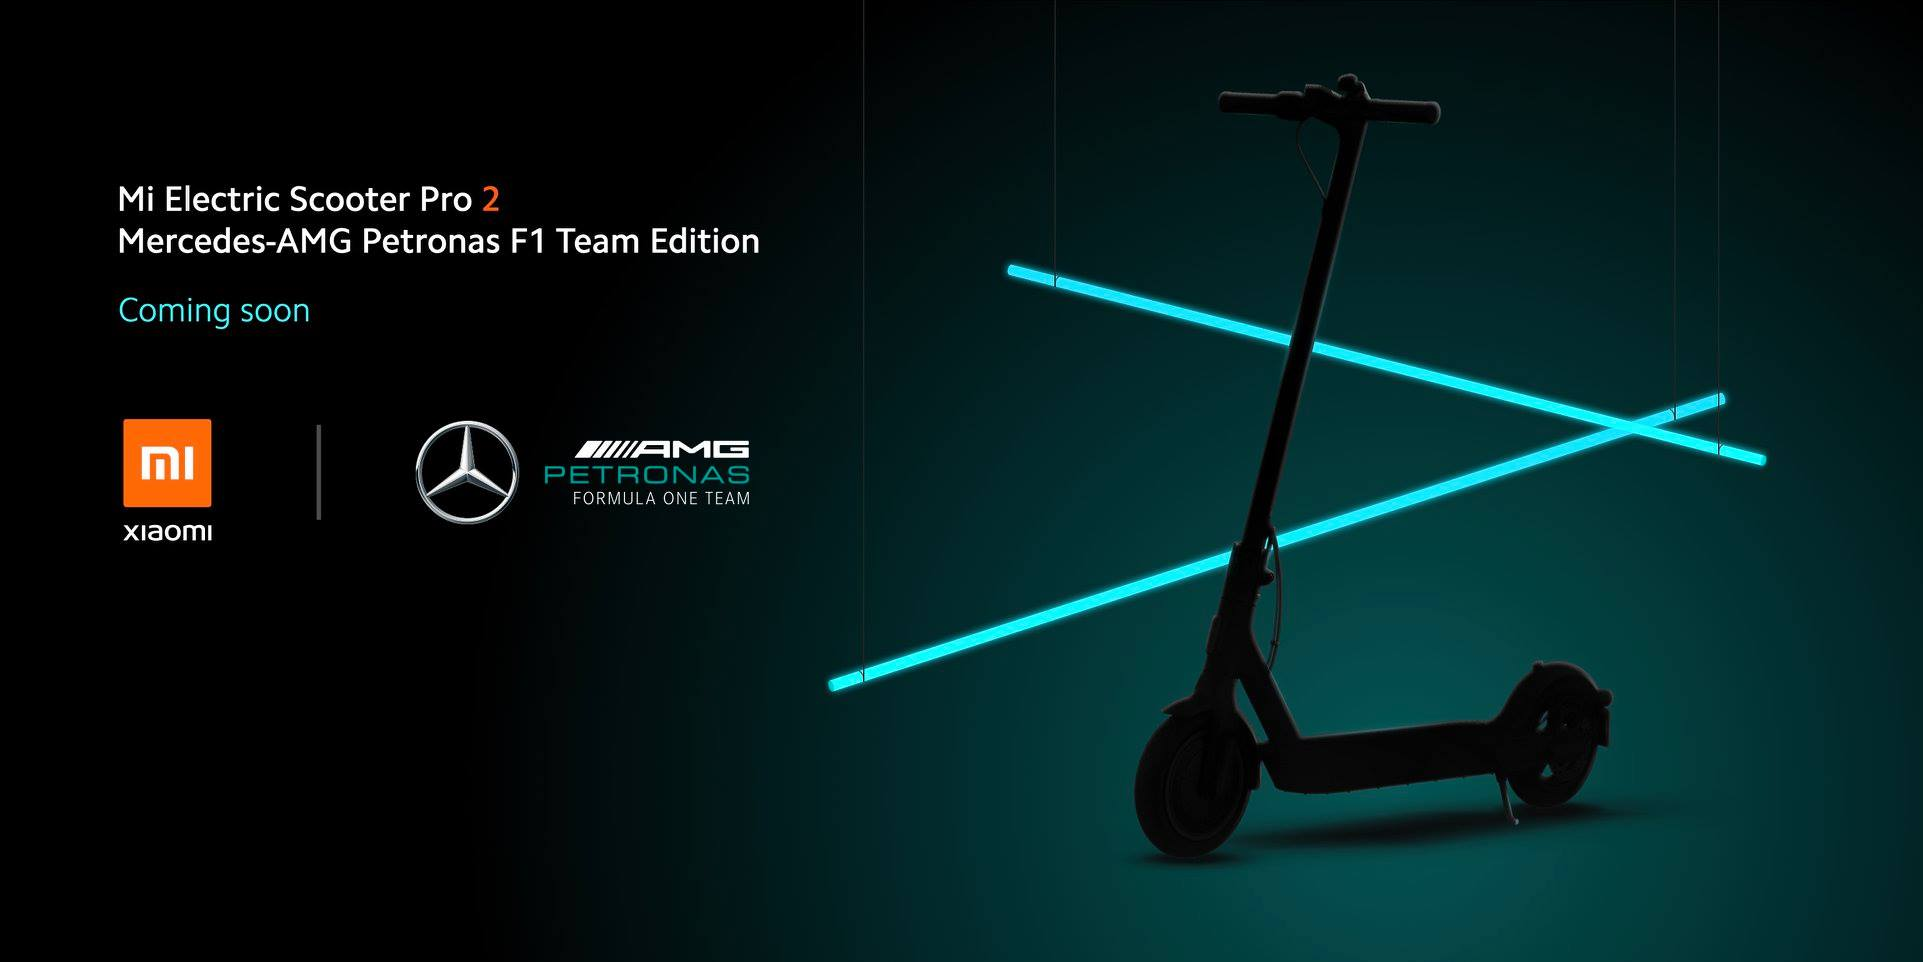 Mi Electric Scooter 2 Pro Mercedes AMG Petronas Edition